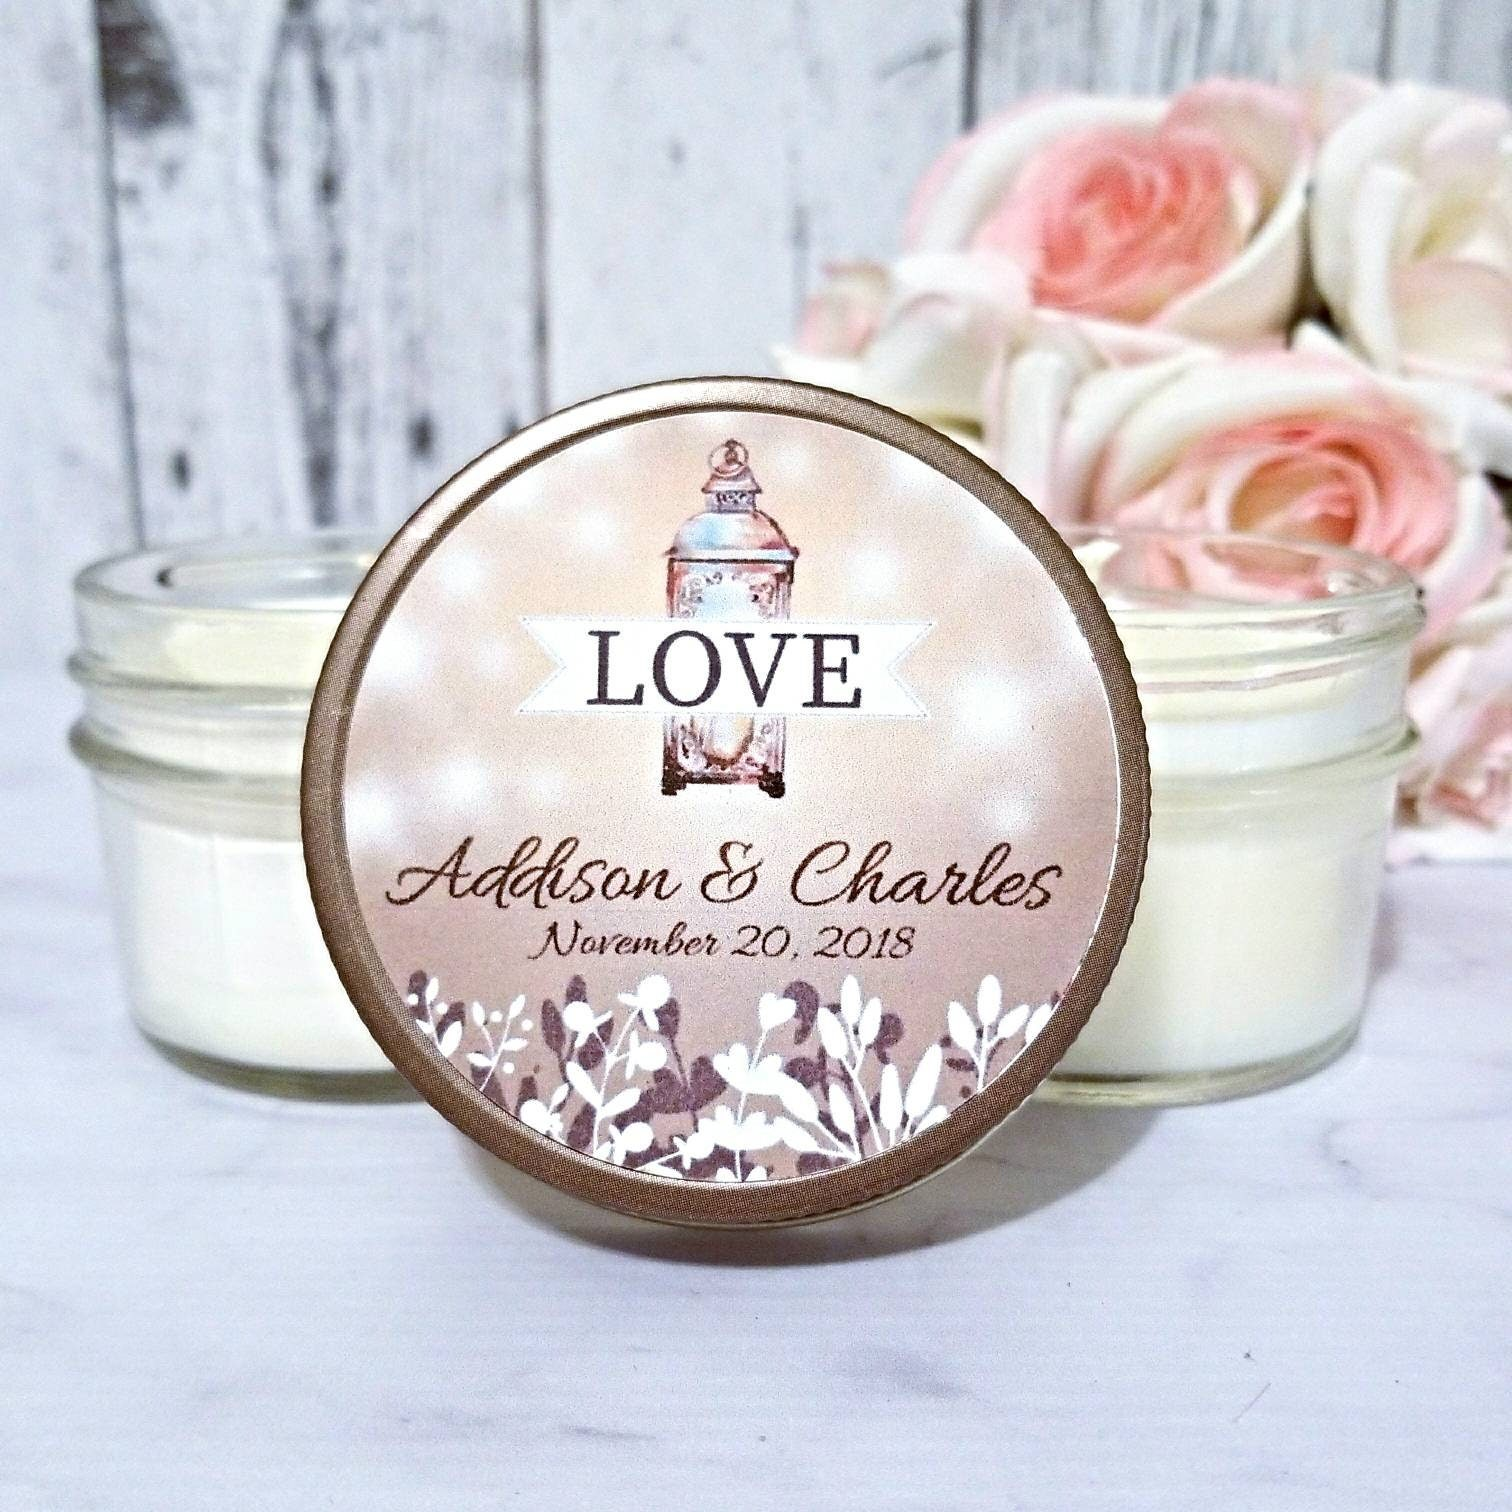 Soy Candle Wedding Favor - Soy Candle Favors - Wedding Favor Candles ...